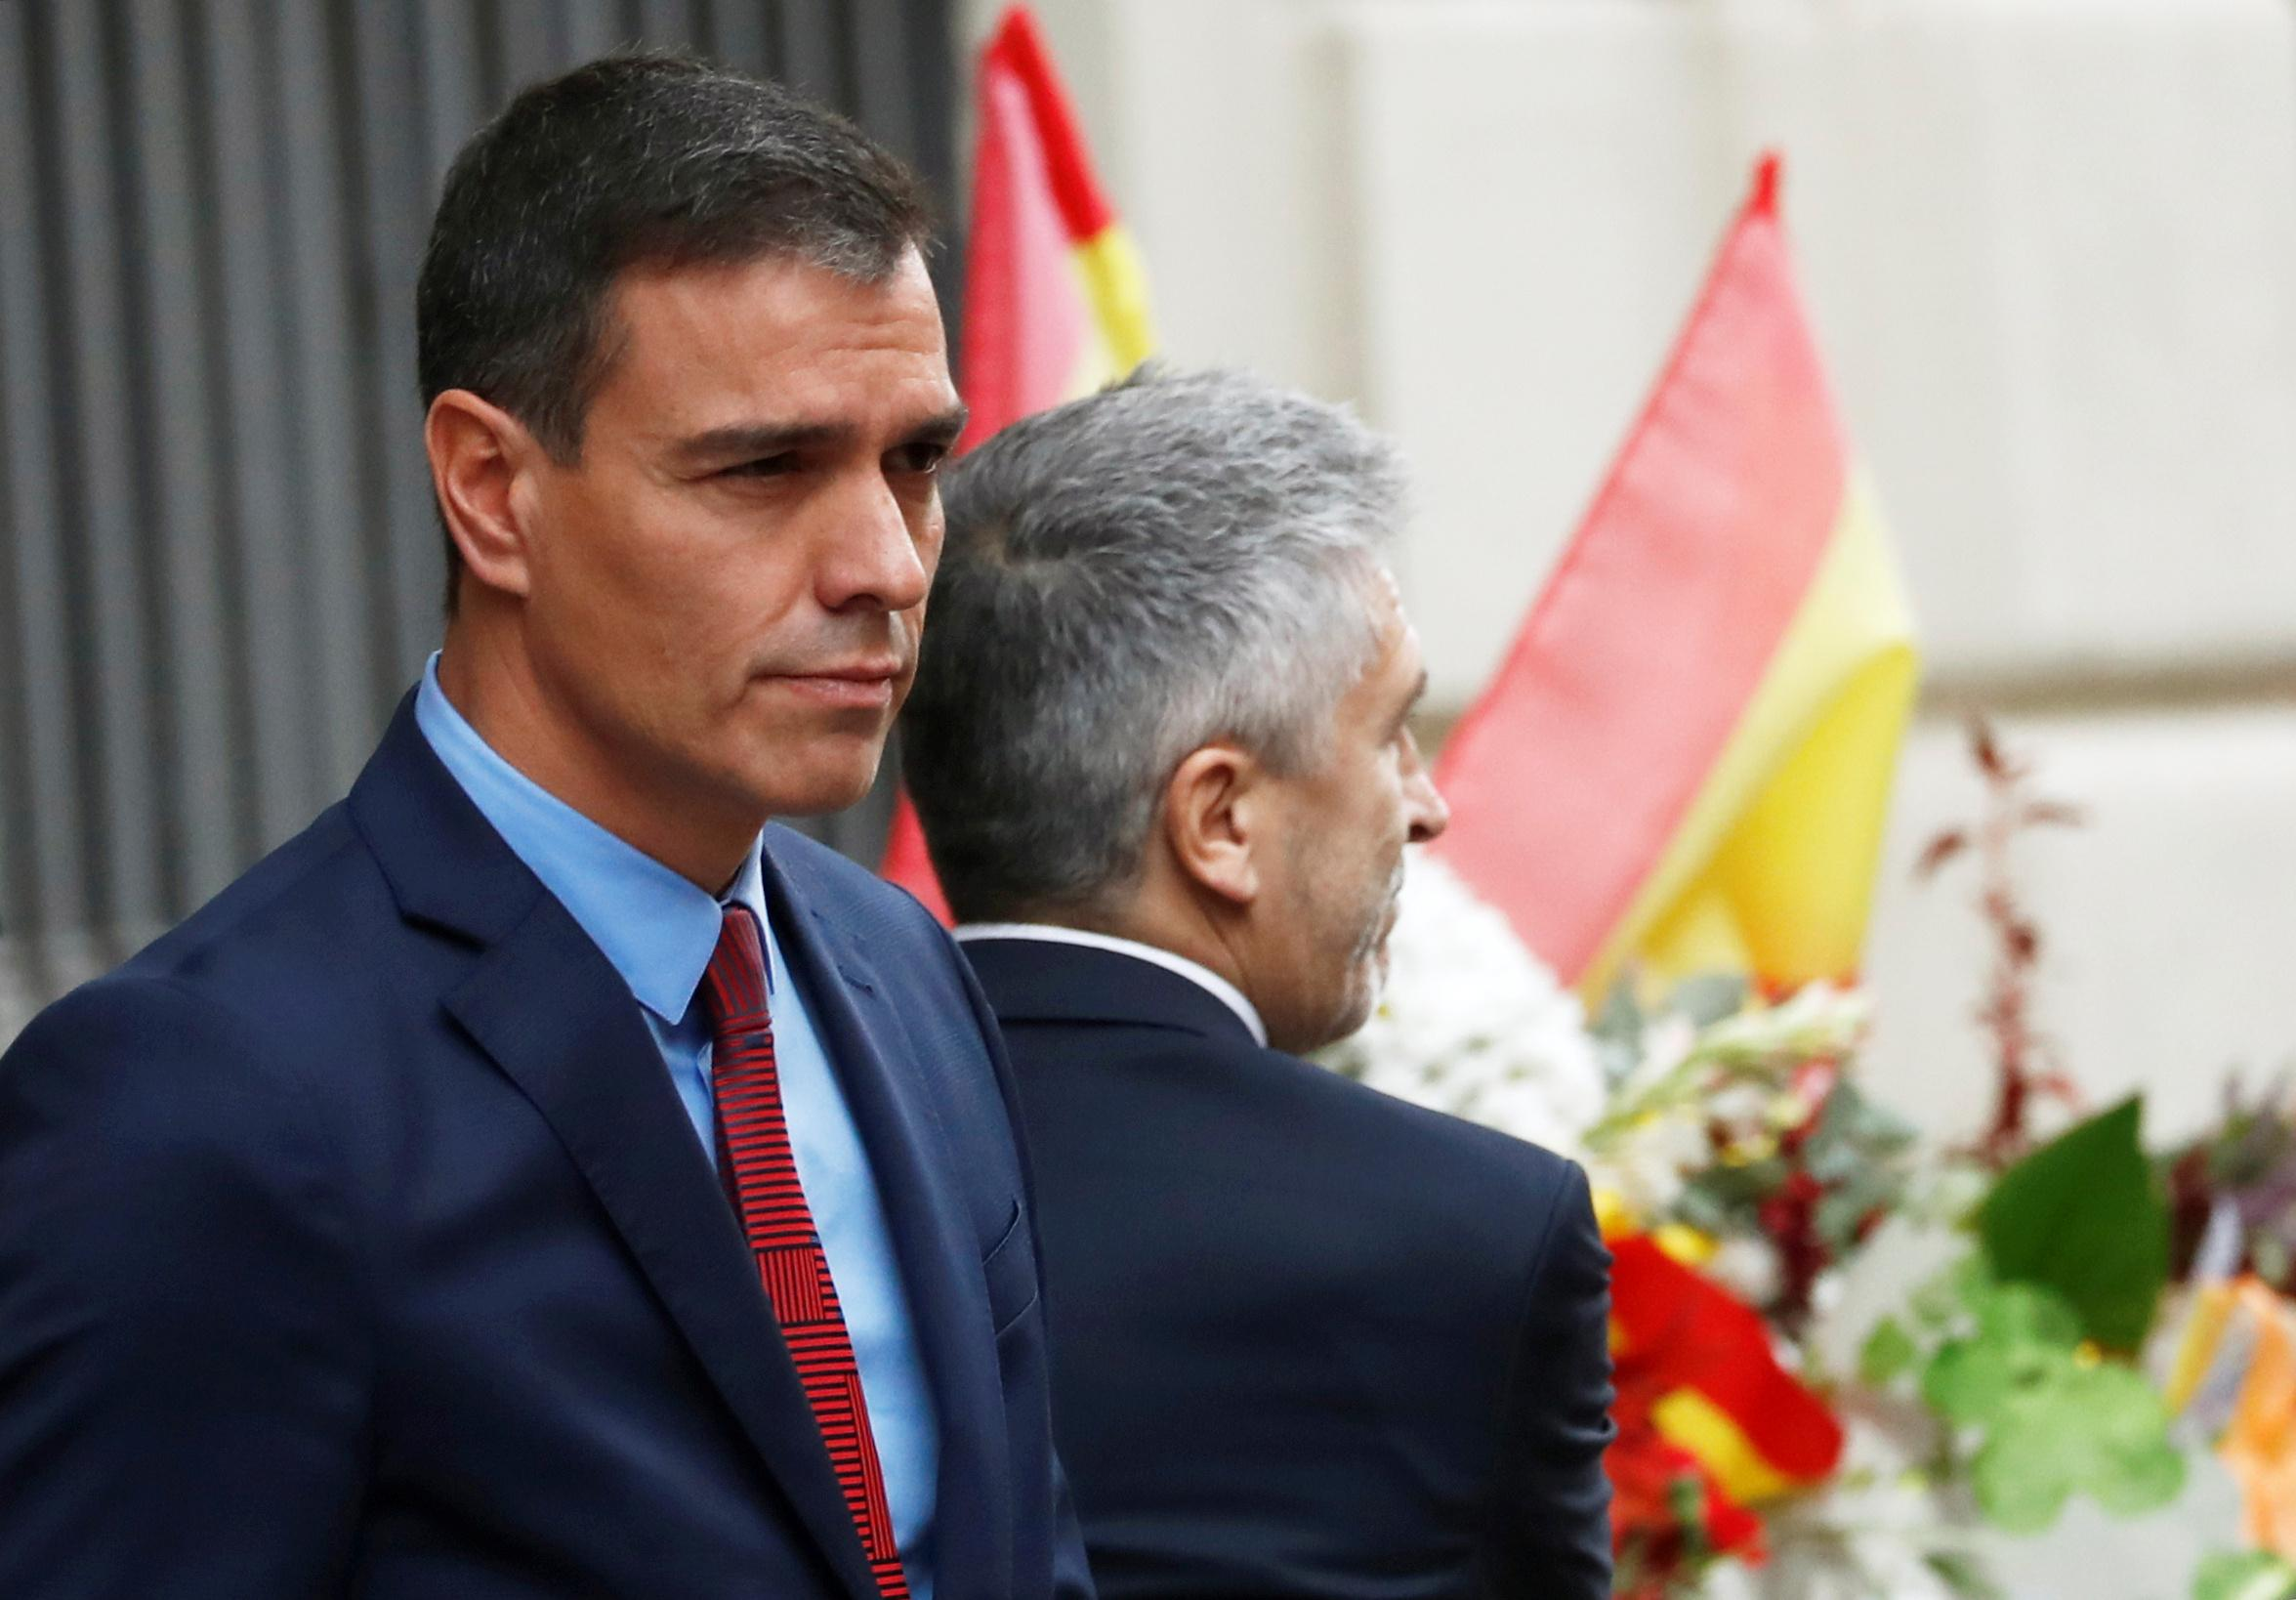 Spanish PM visits Barcelona, criticizes regional chief